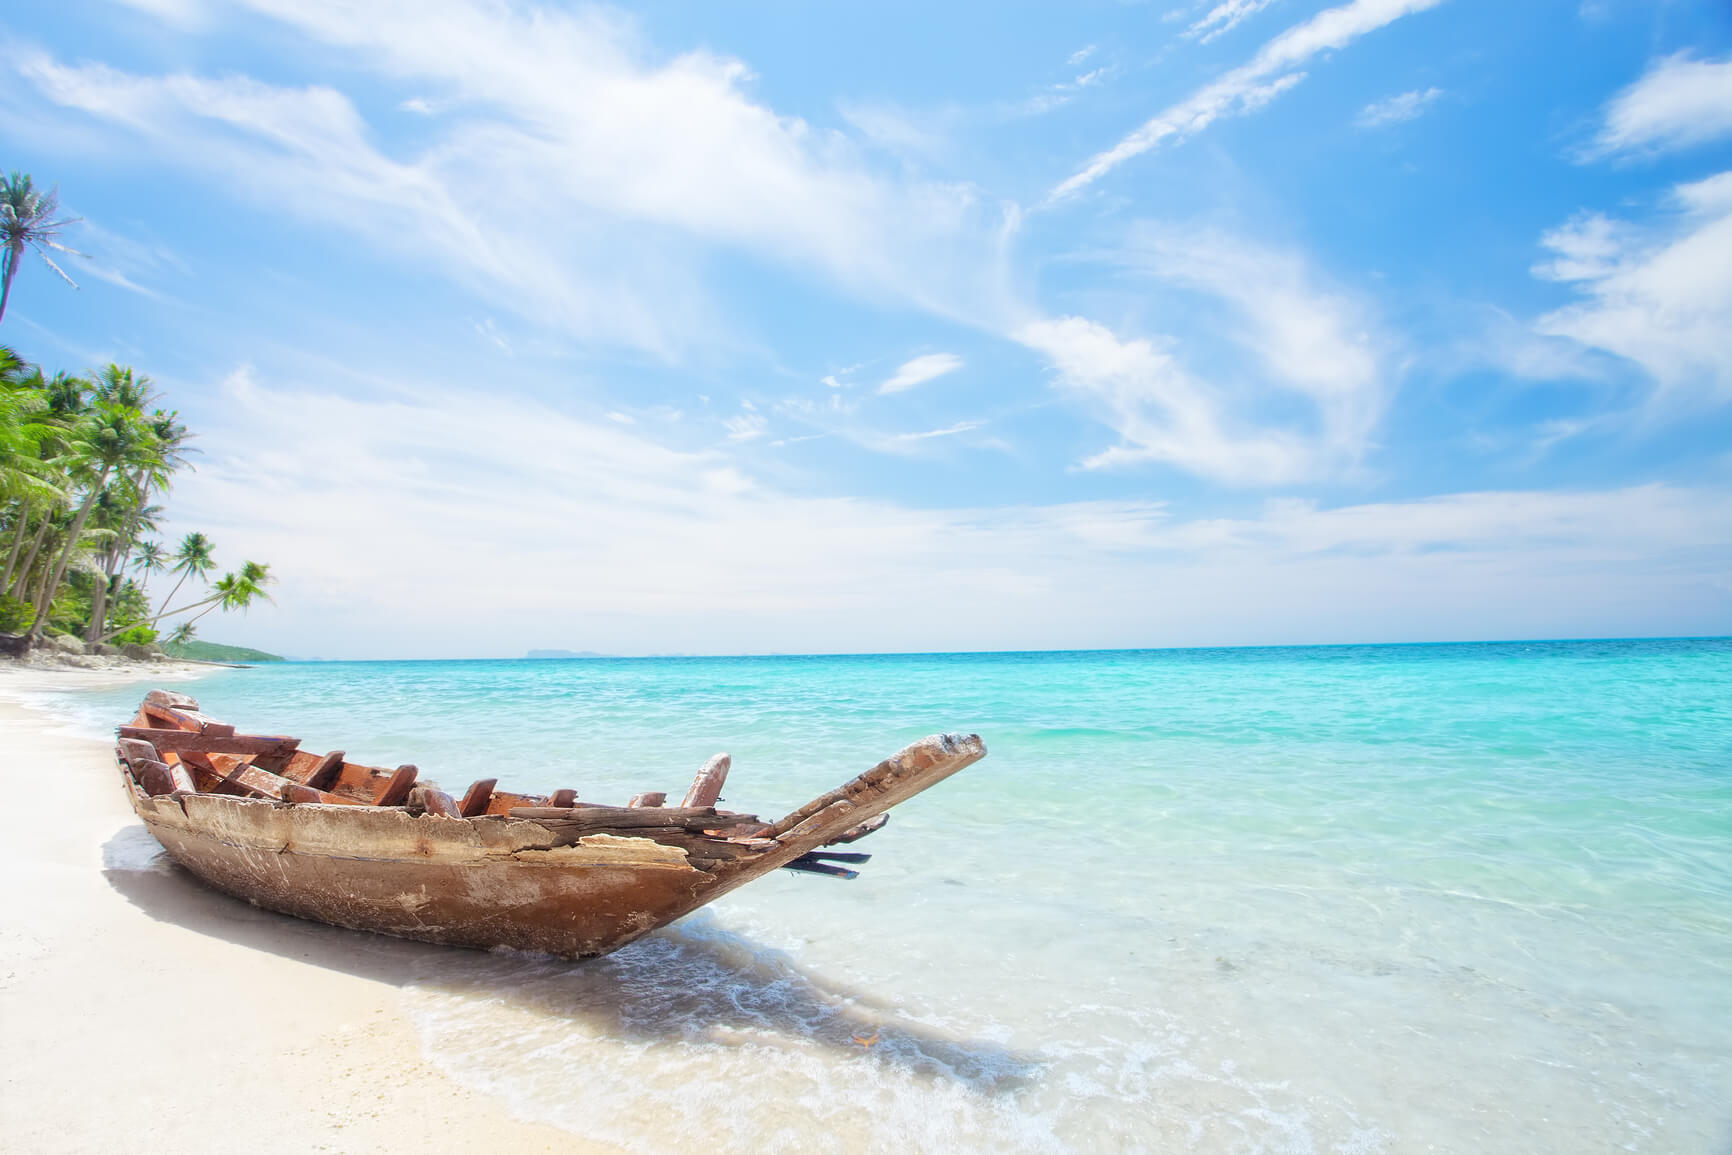 Non-stop from Milan, Italy to the Maldives for only €330 roundtrip